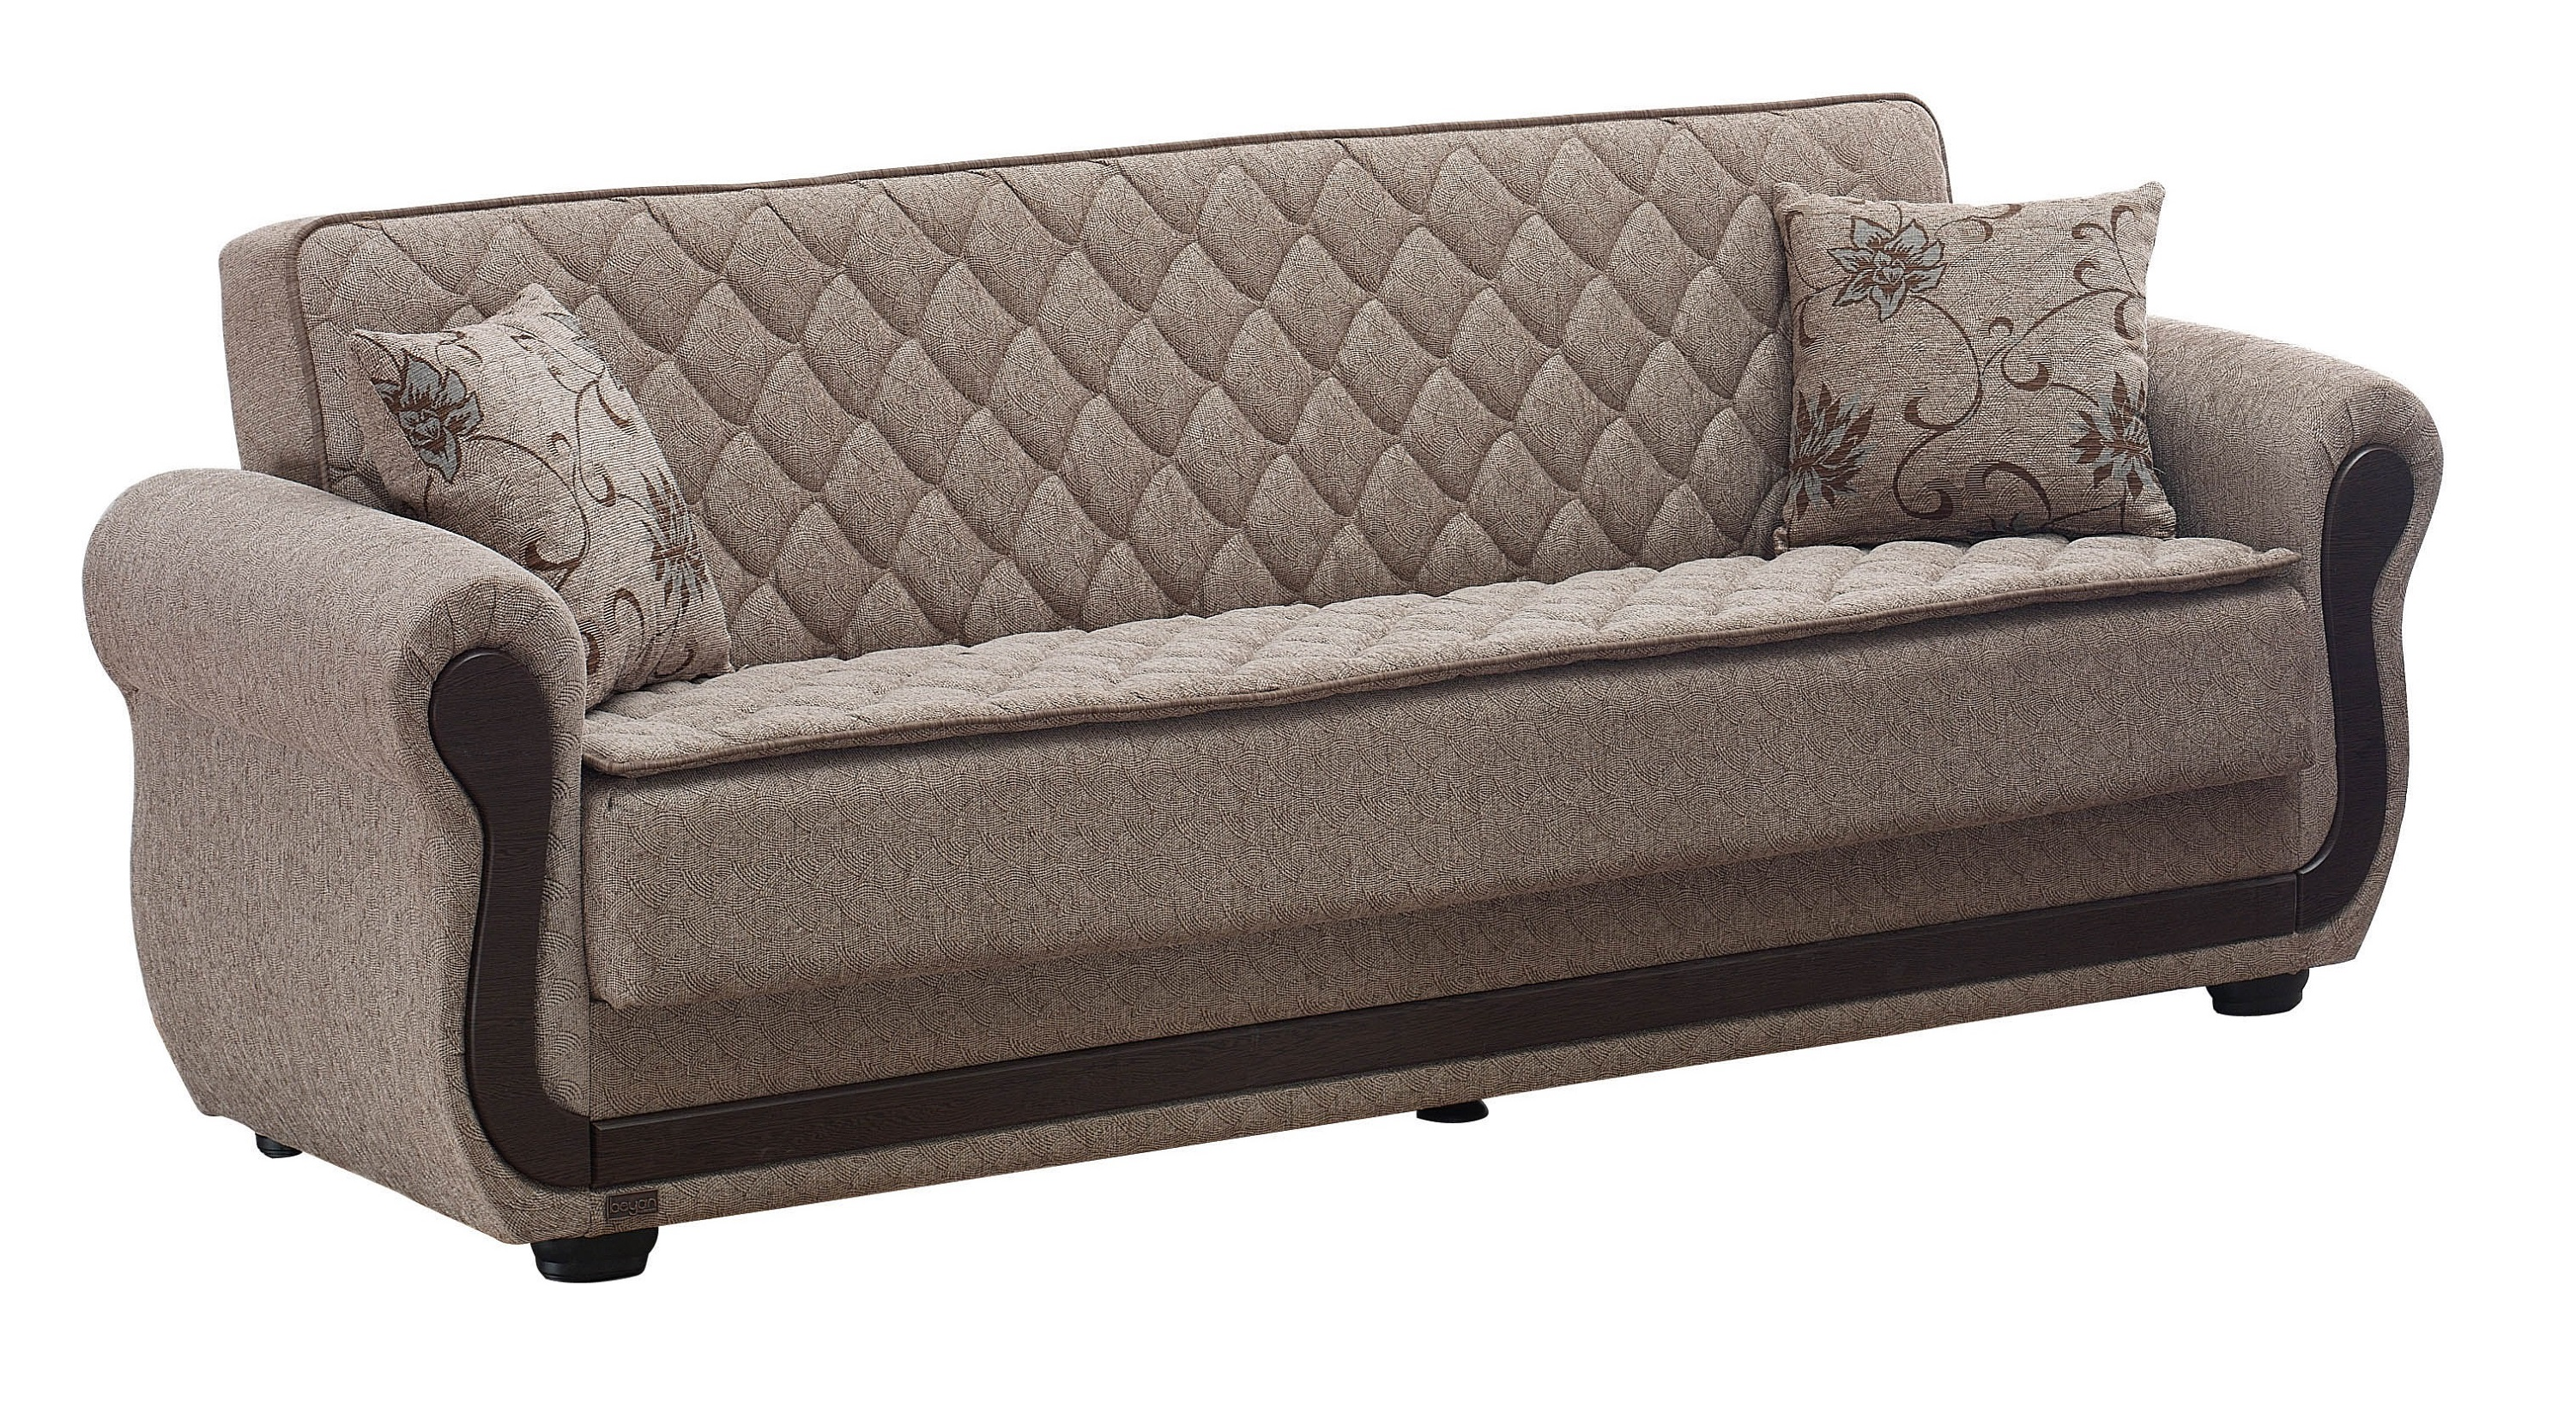 Euro Style Section Sofa Nice Home Design